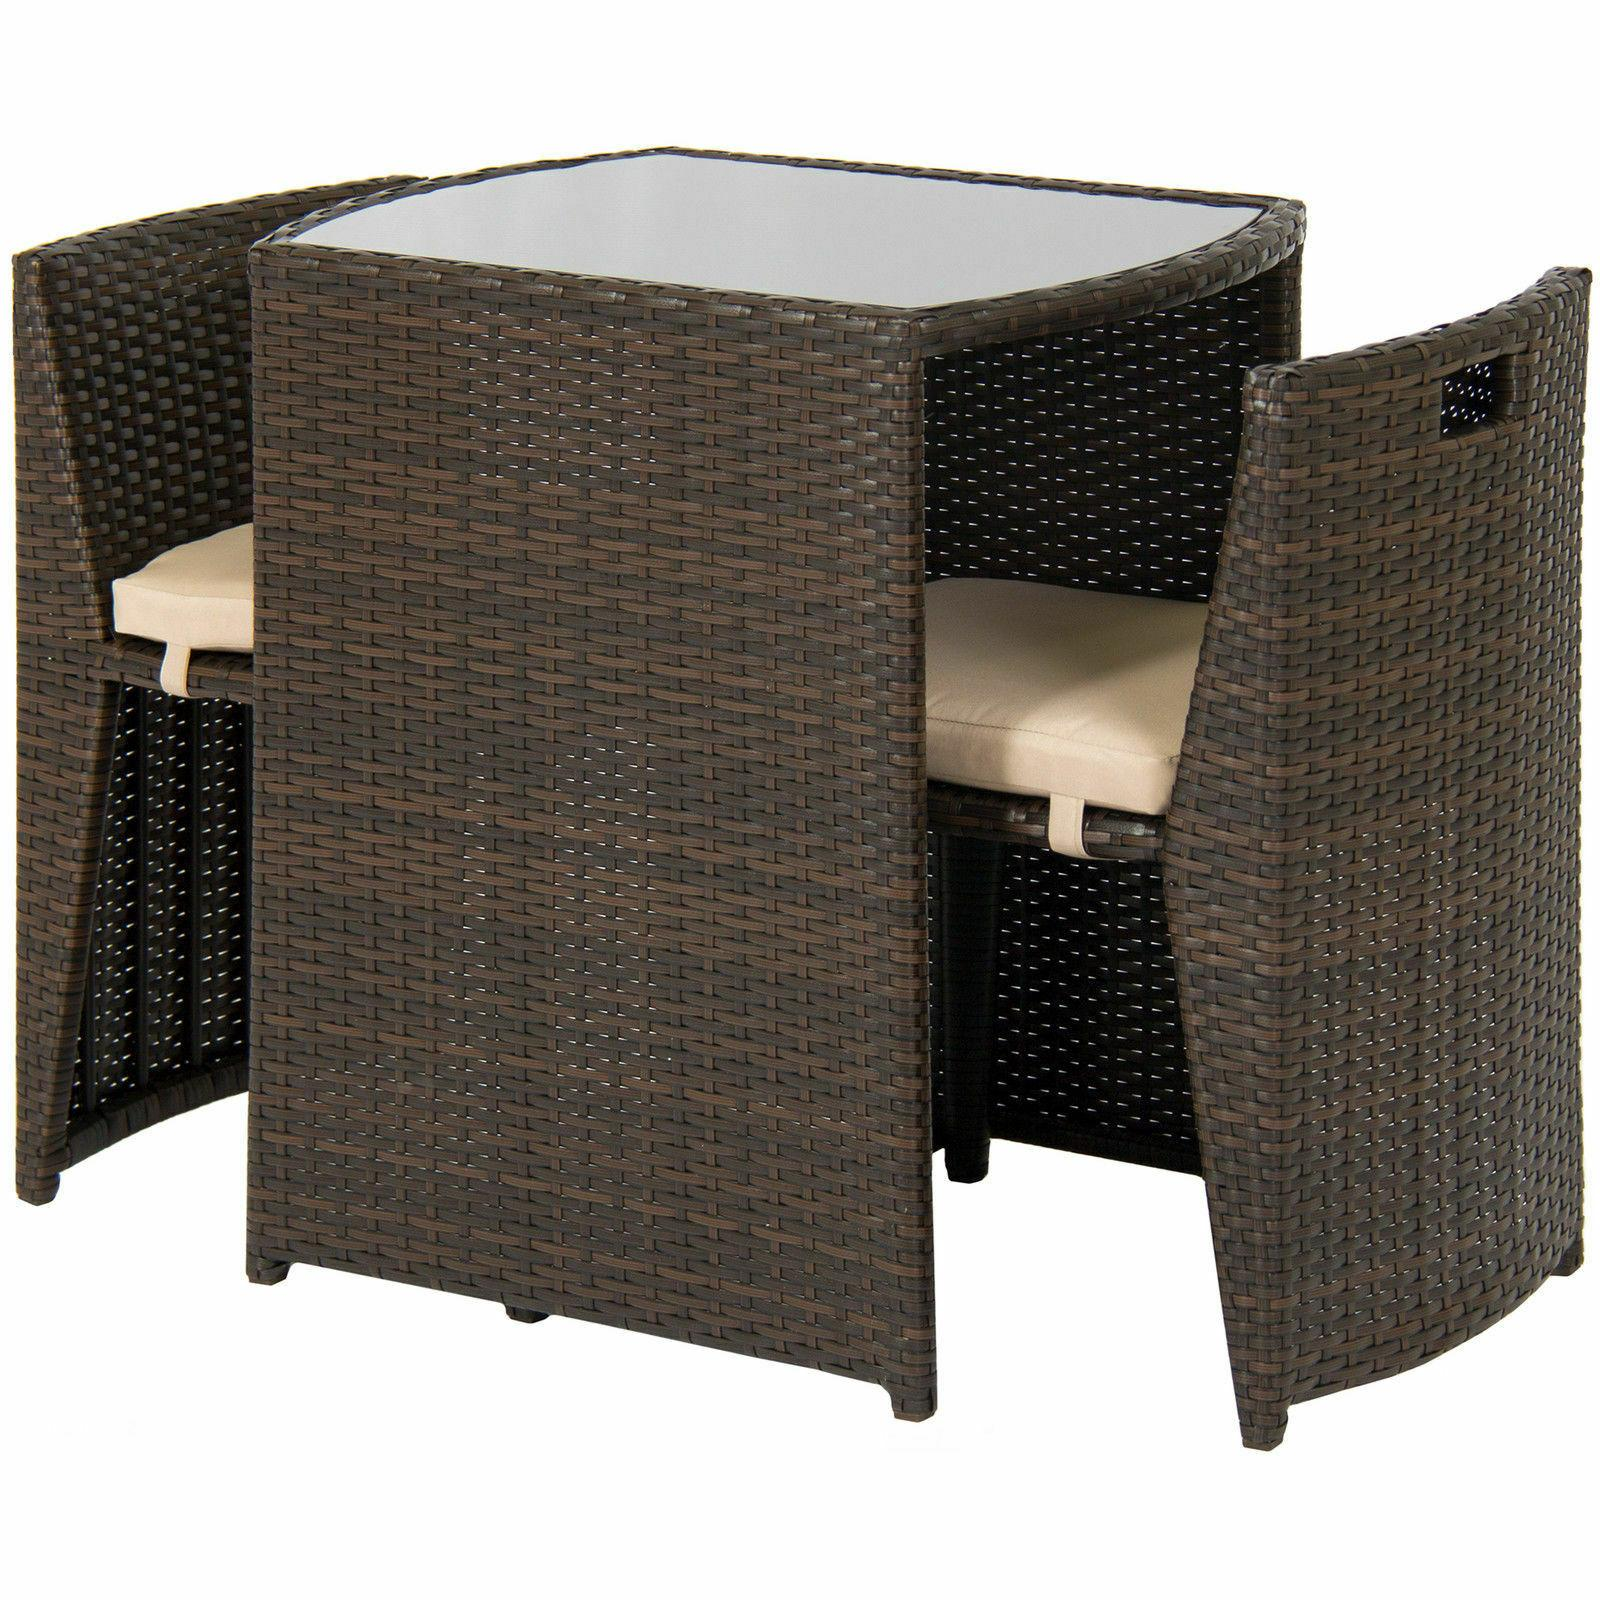 Outdoor Patio Furniture 3pc Top 2 Brown